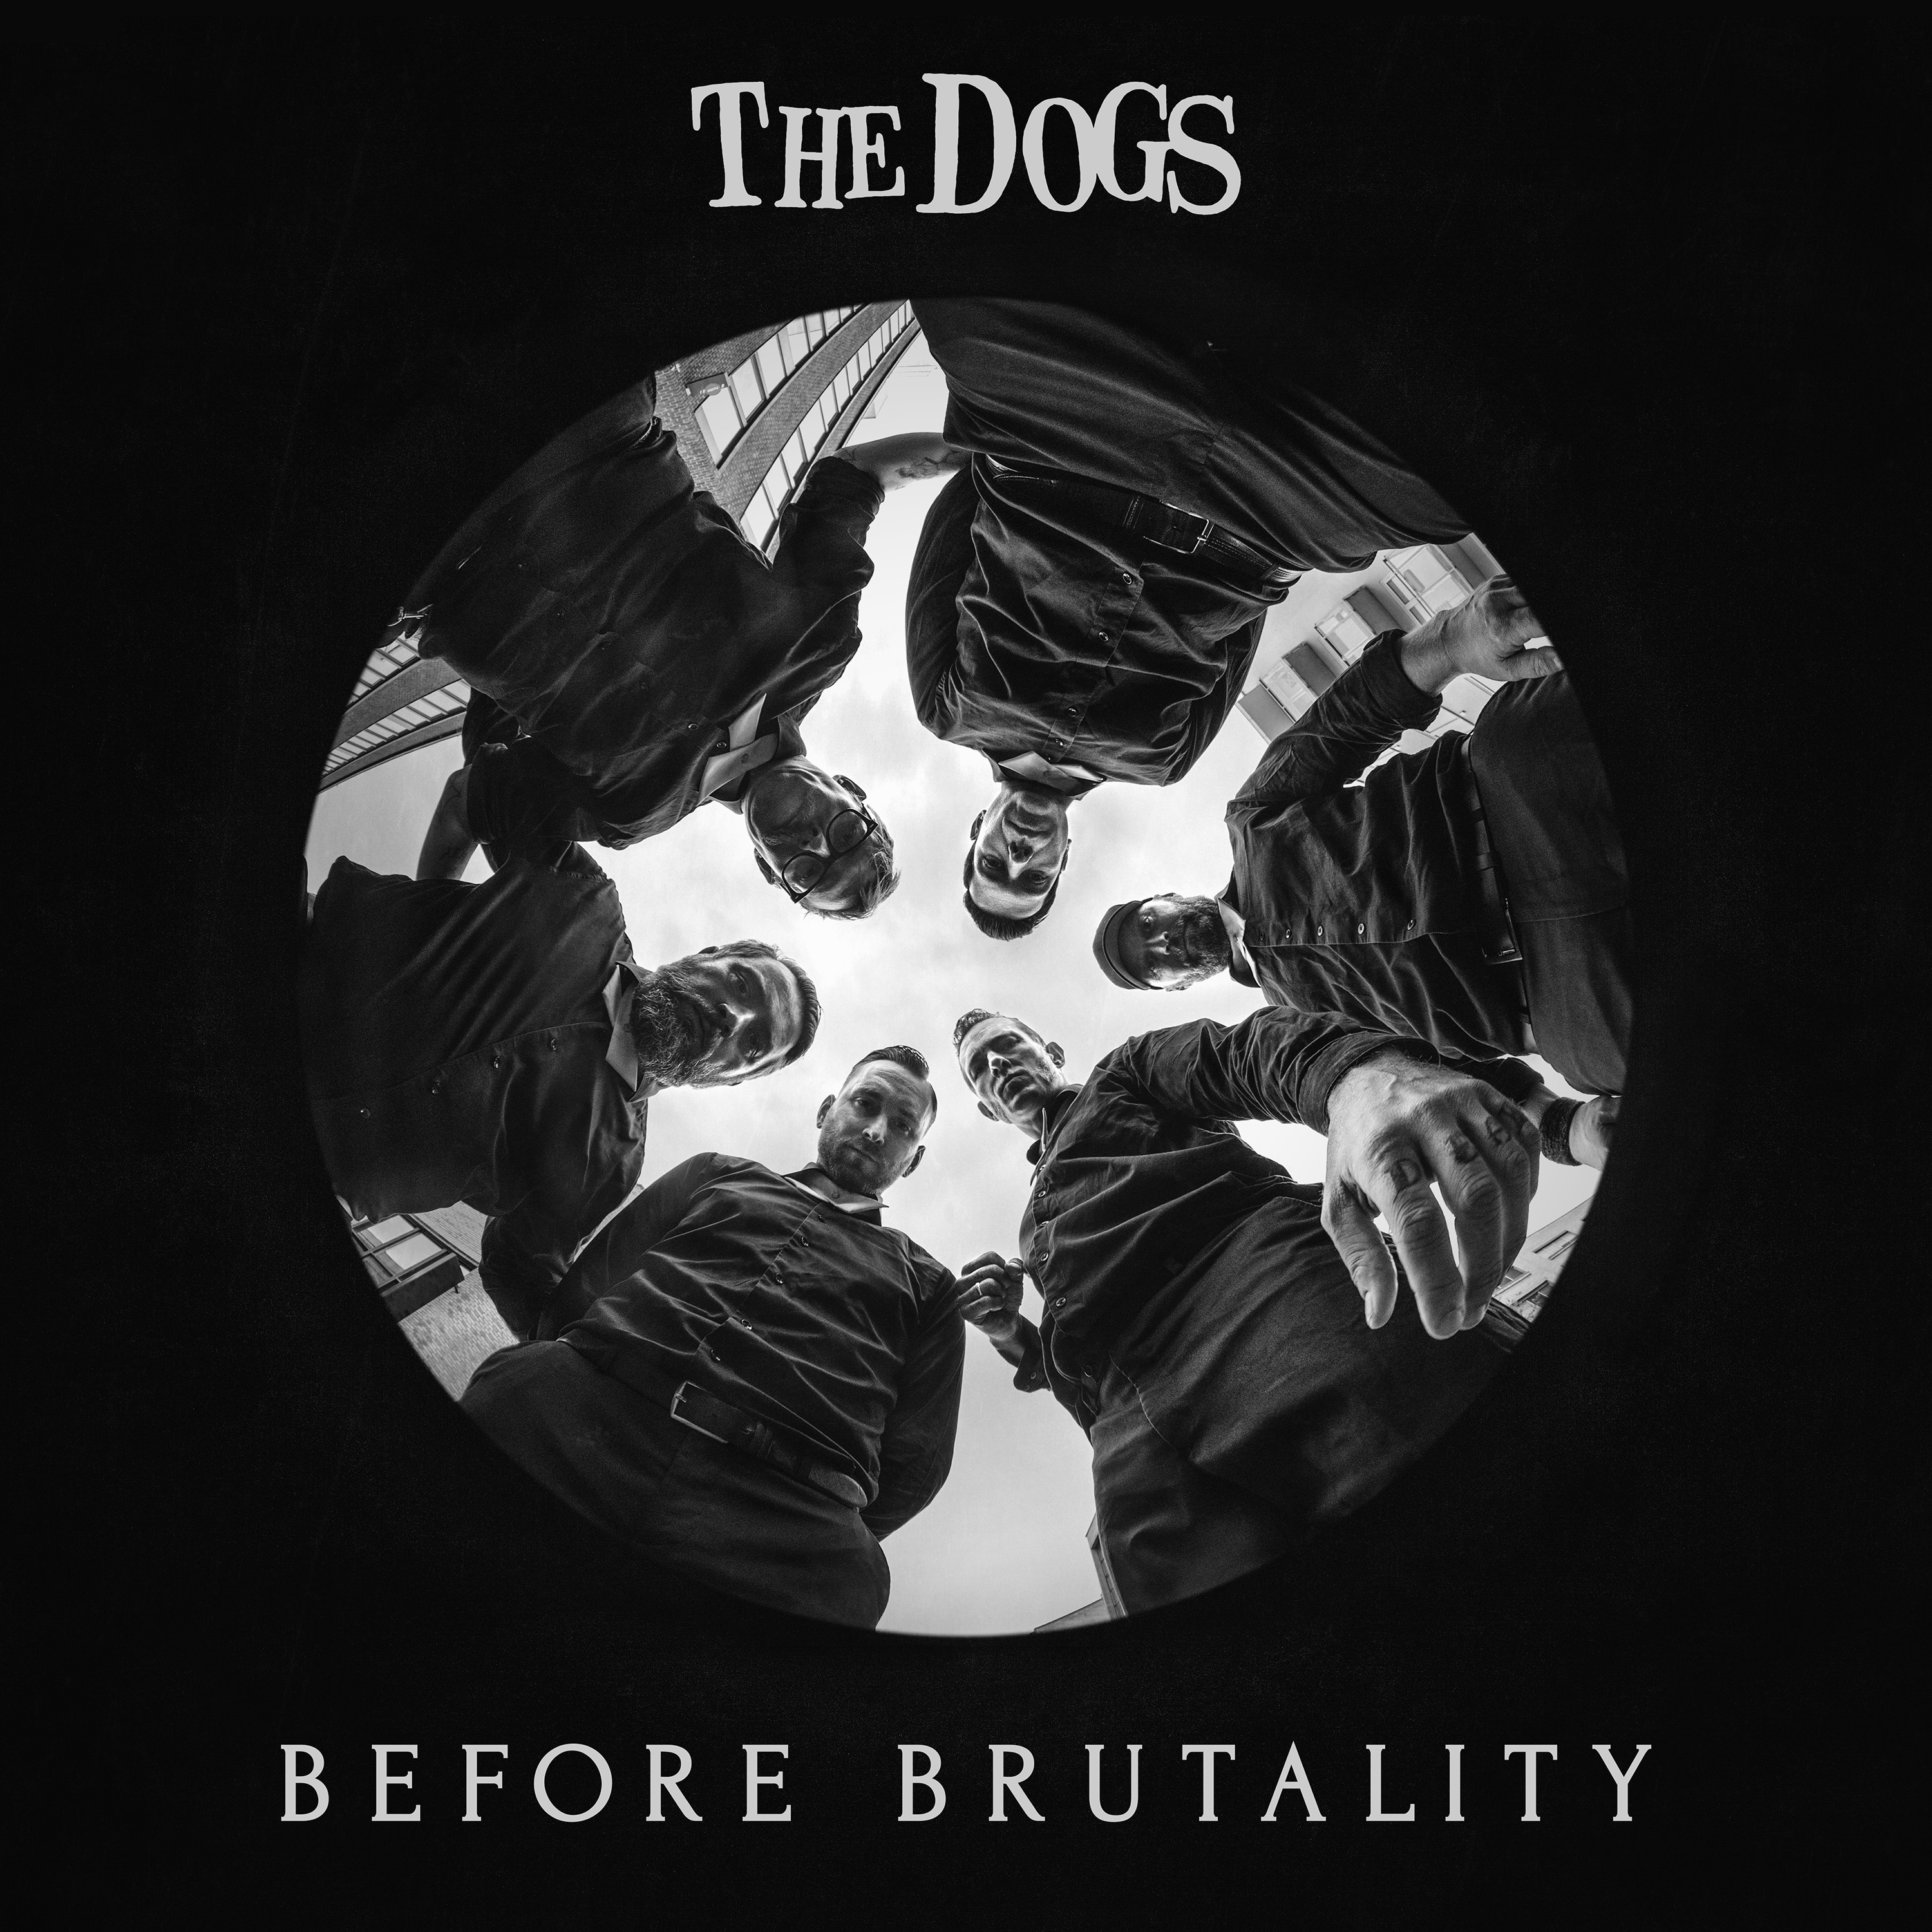 The Dogs - Before Brutality (Limited Edition Svart Vinyl)